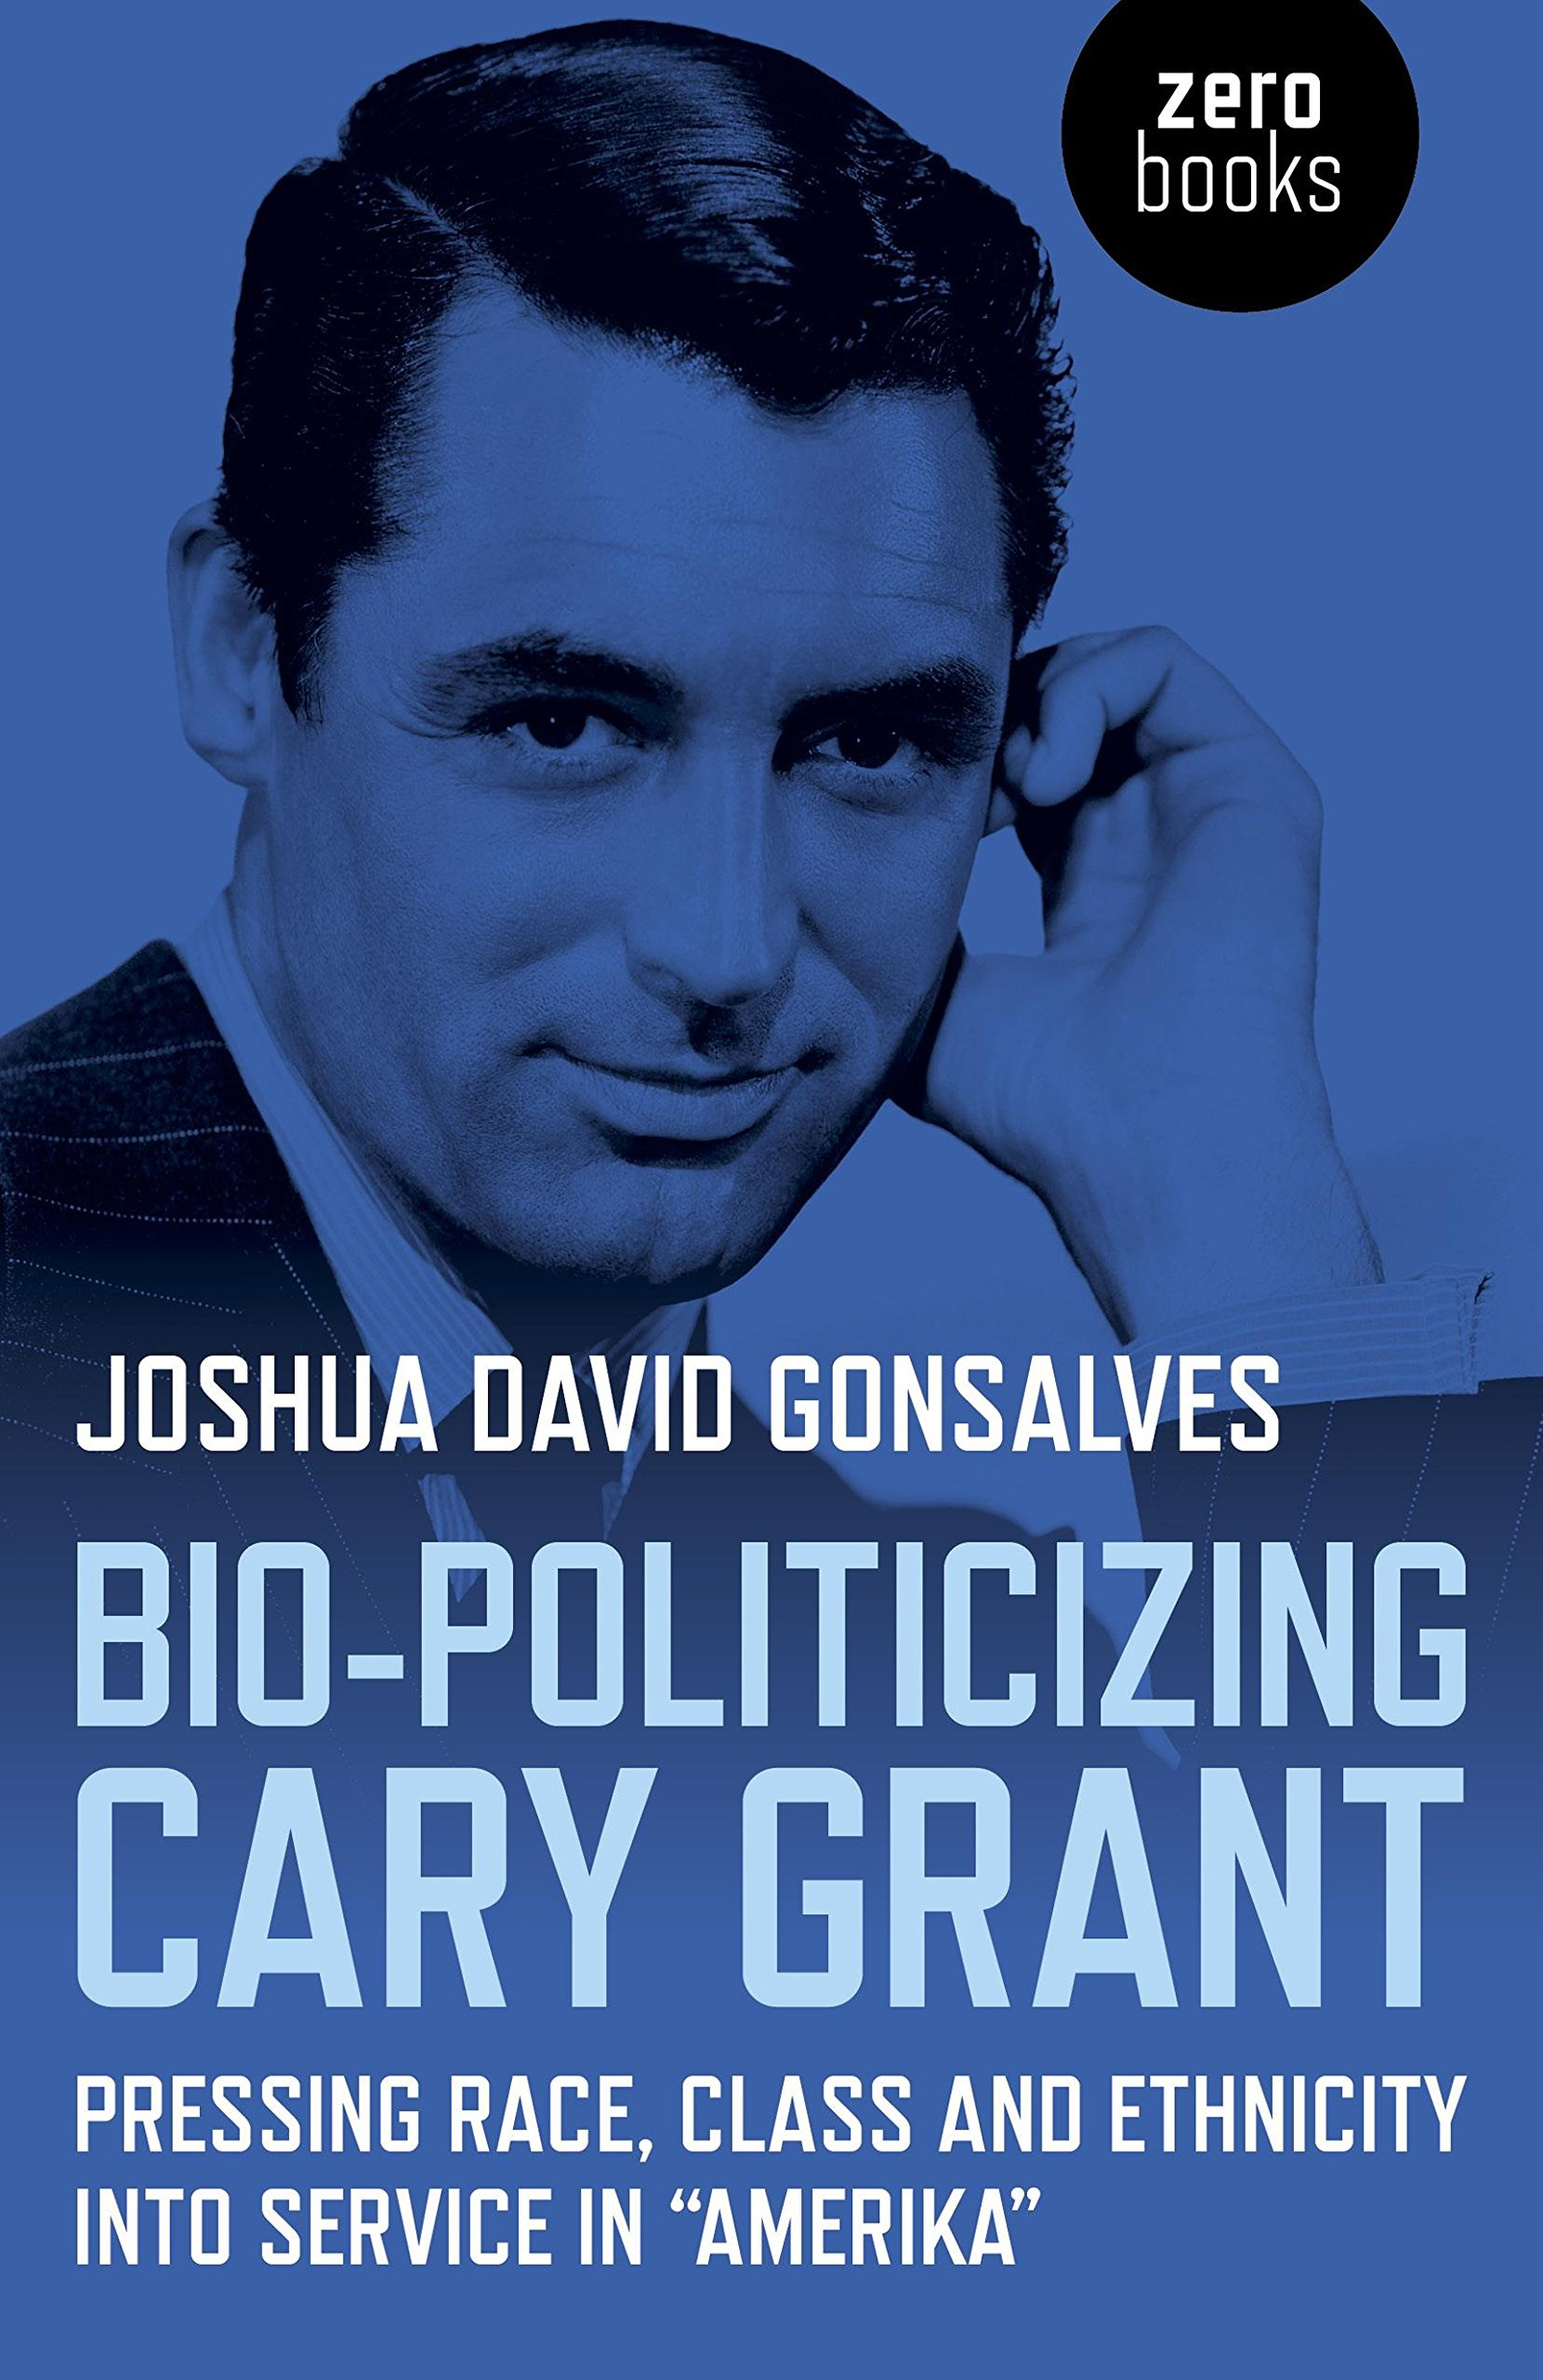 Buy Bio-Politicizing Cary Grant: Pressing Race, Class and Ethnicity into Service in